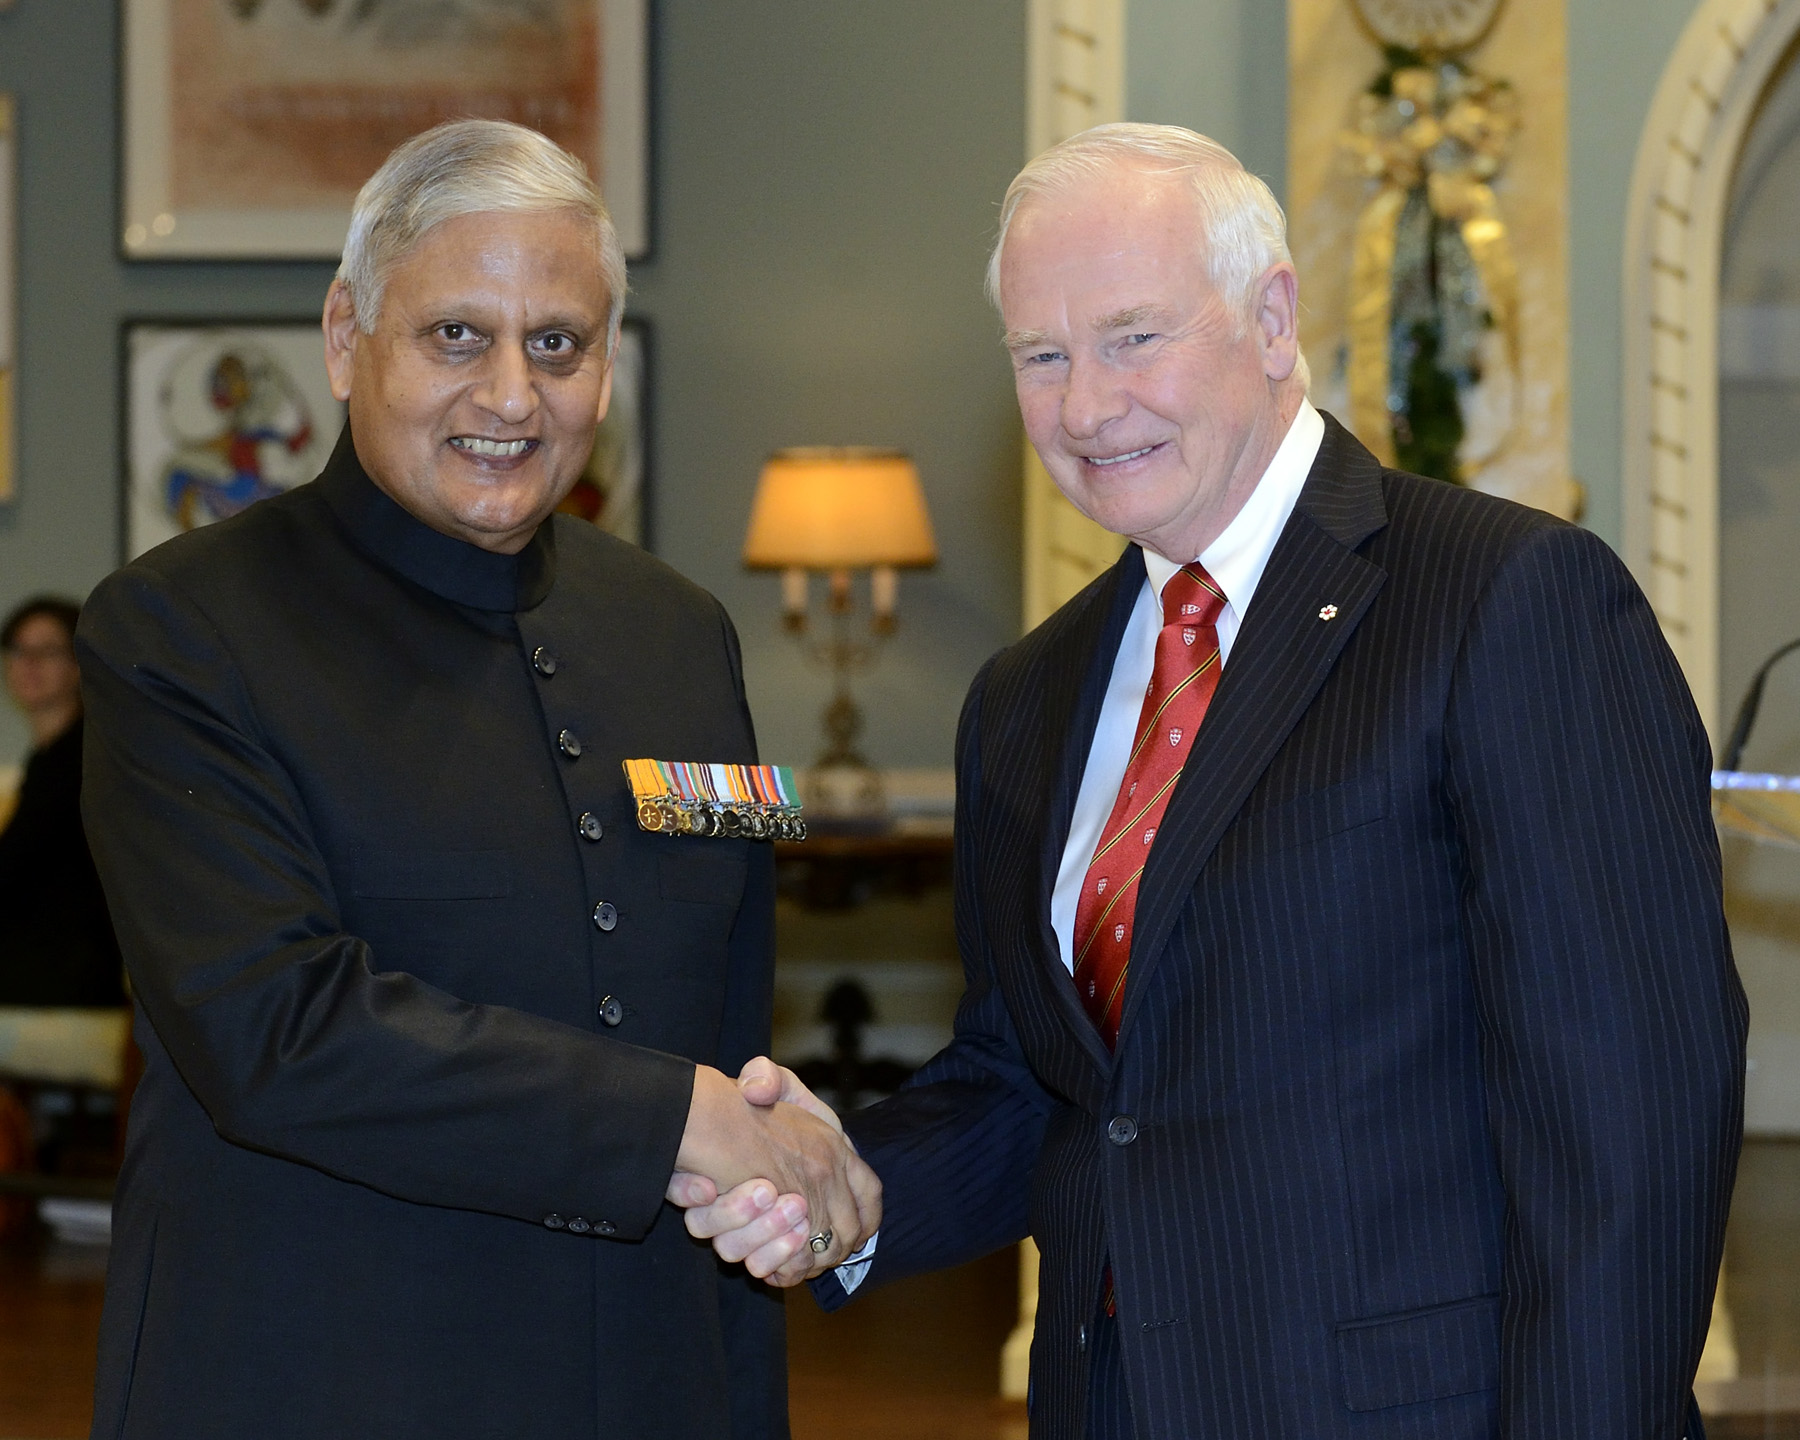 The Governor General received the credentials of His Excellency Nirmal Kumar Verma, High Commissioner for the Republic of India.